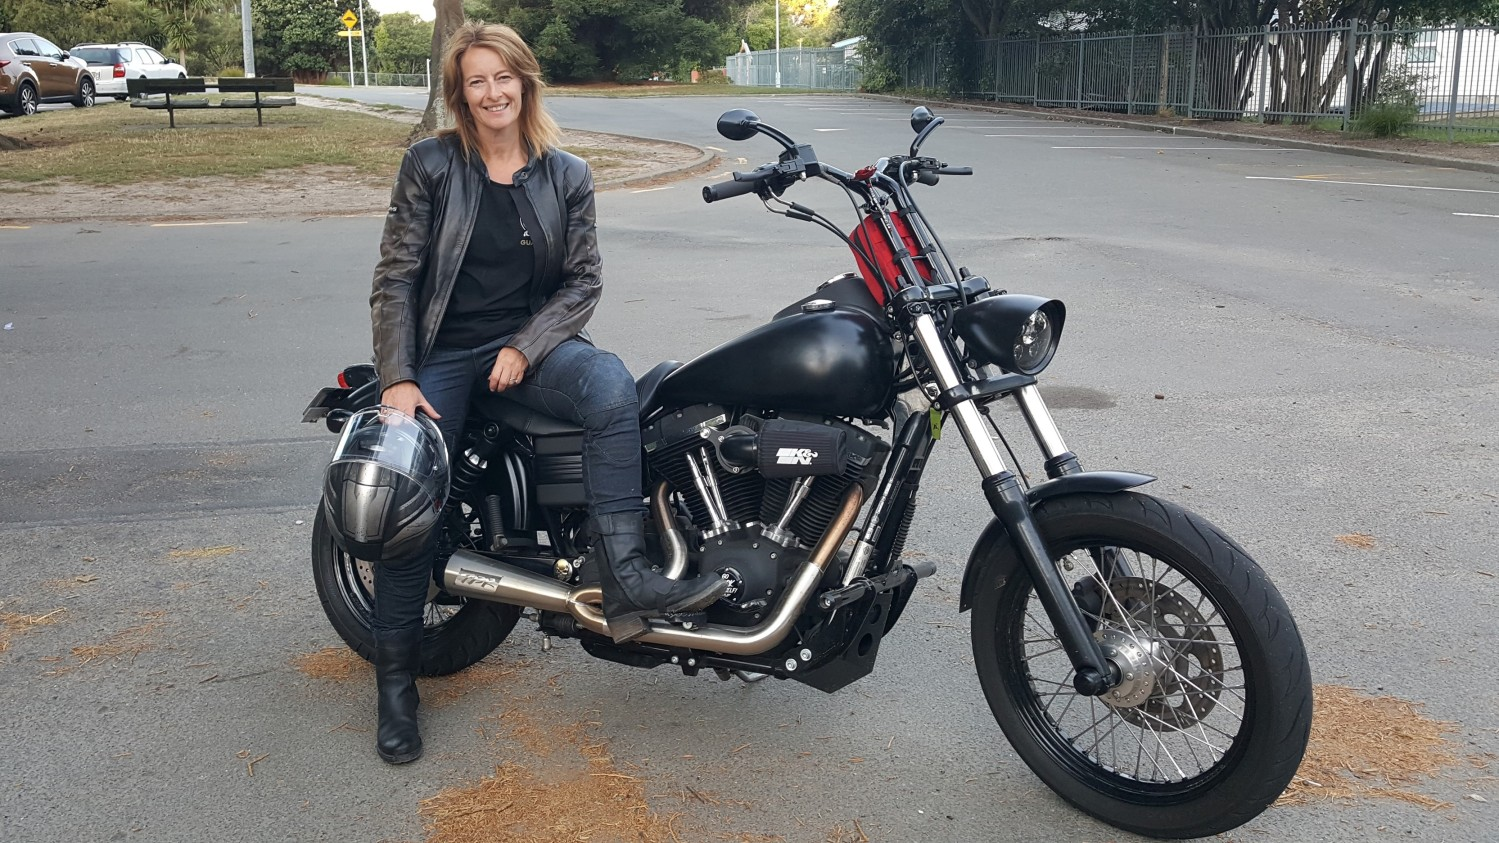 Jenny Hibbert the lady biker who has taken on the role as Women Riders World Relay, ambassador for New Zealand